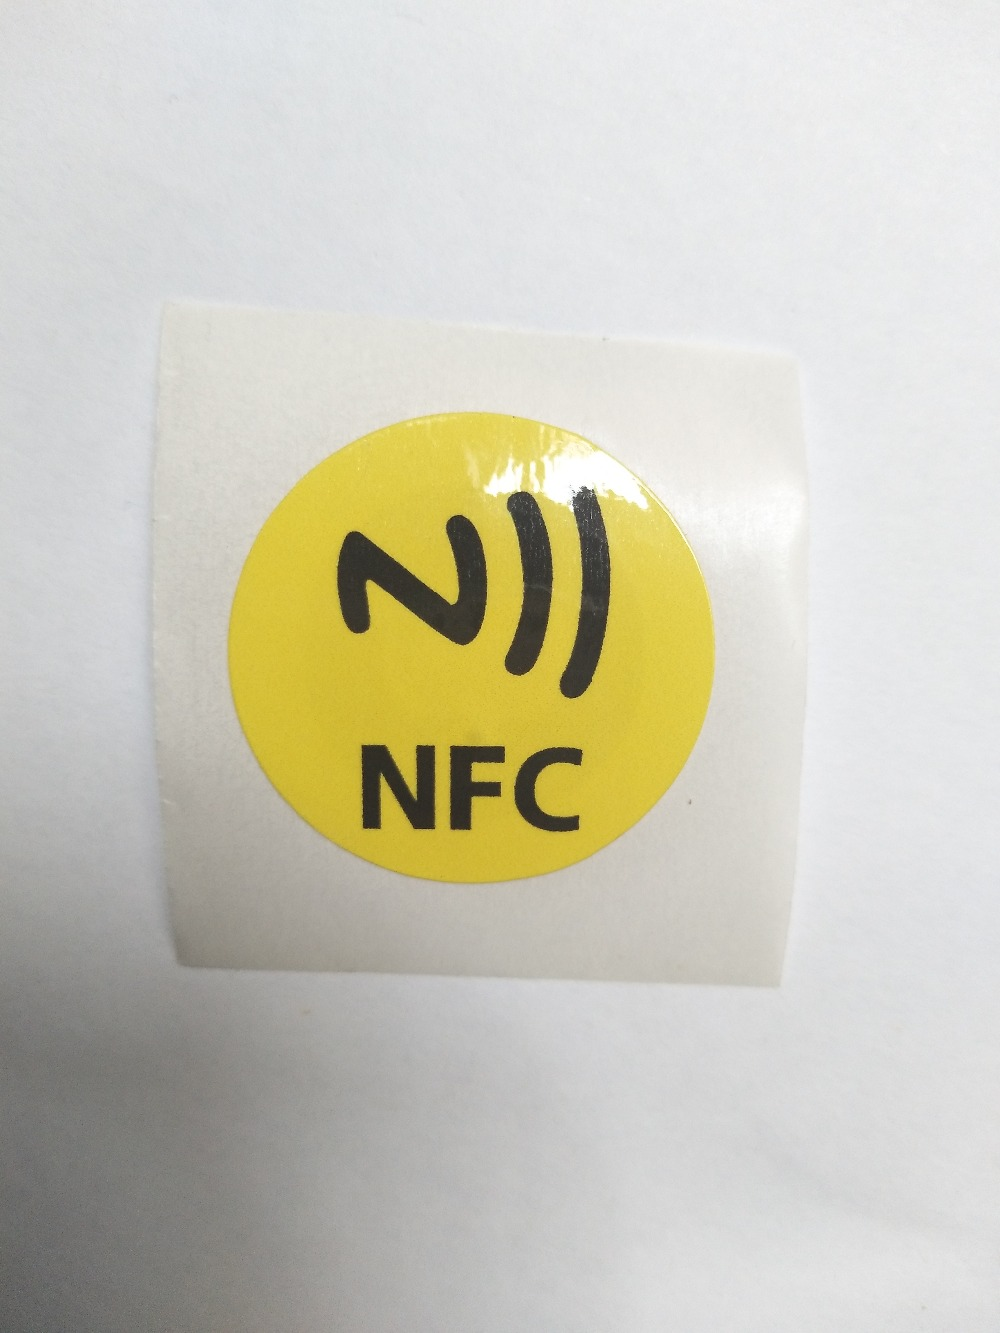 15pcs/lot NFC Tag Sticker 13.56mhz RFID Label Tag NTAG213 Chip NFC Smart Tag 1K 30mm Diameter Compatible with All NFC Phones 4pcs lot nfc tag sticker 13 56mhz iso14443a ntag 213 nfc sticker universal lable rfid tag for all nfc enabled phones dia 30mm